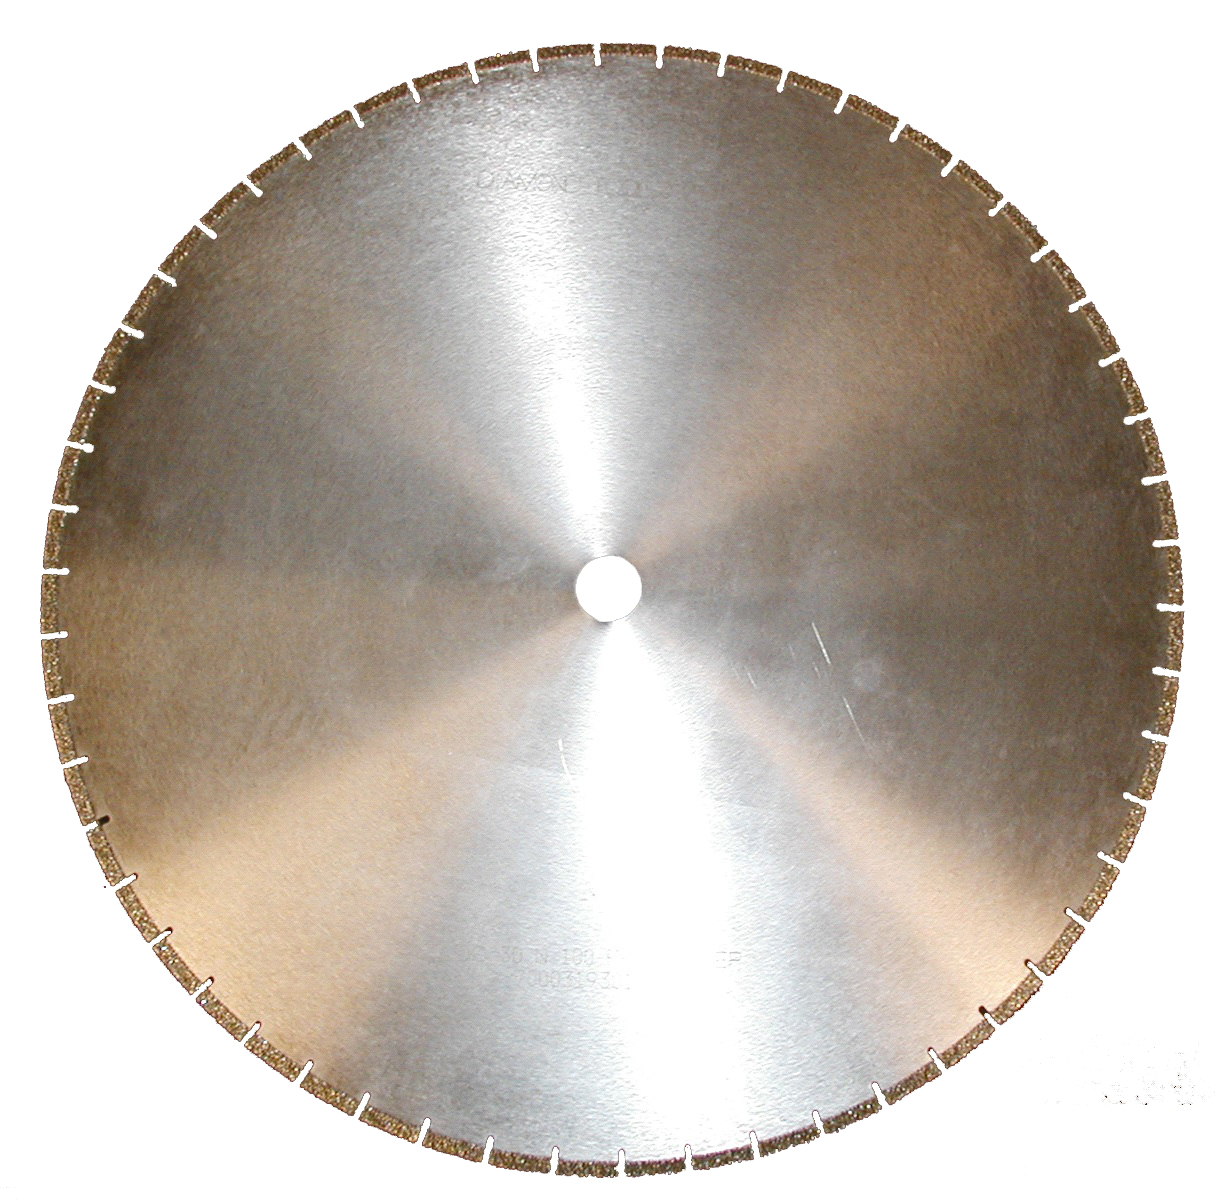 Diamond Electroplated Superabrasive Wheels